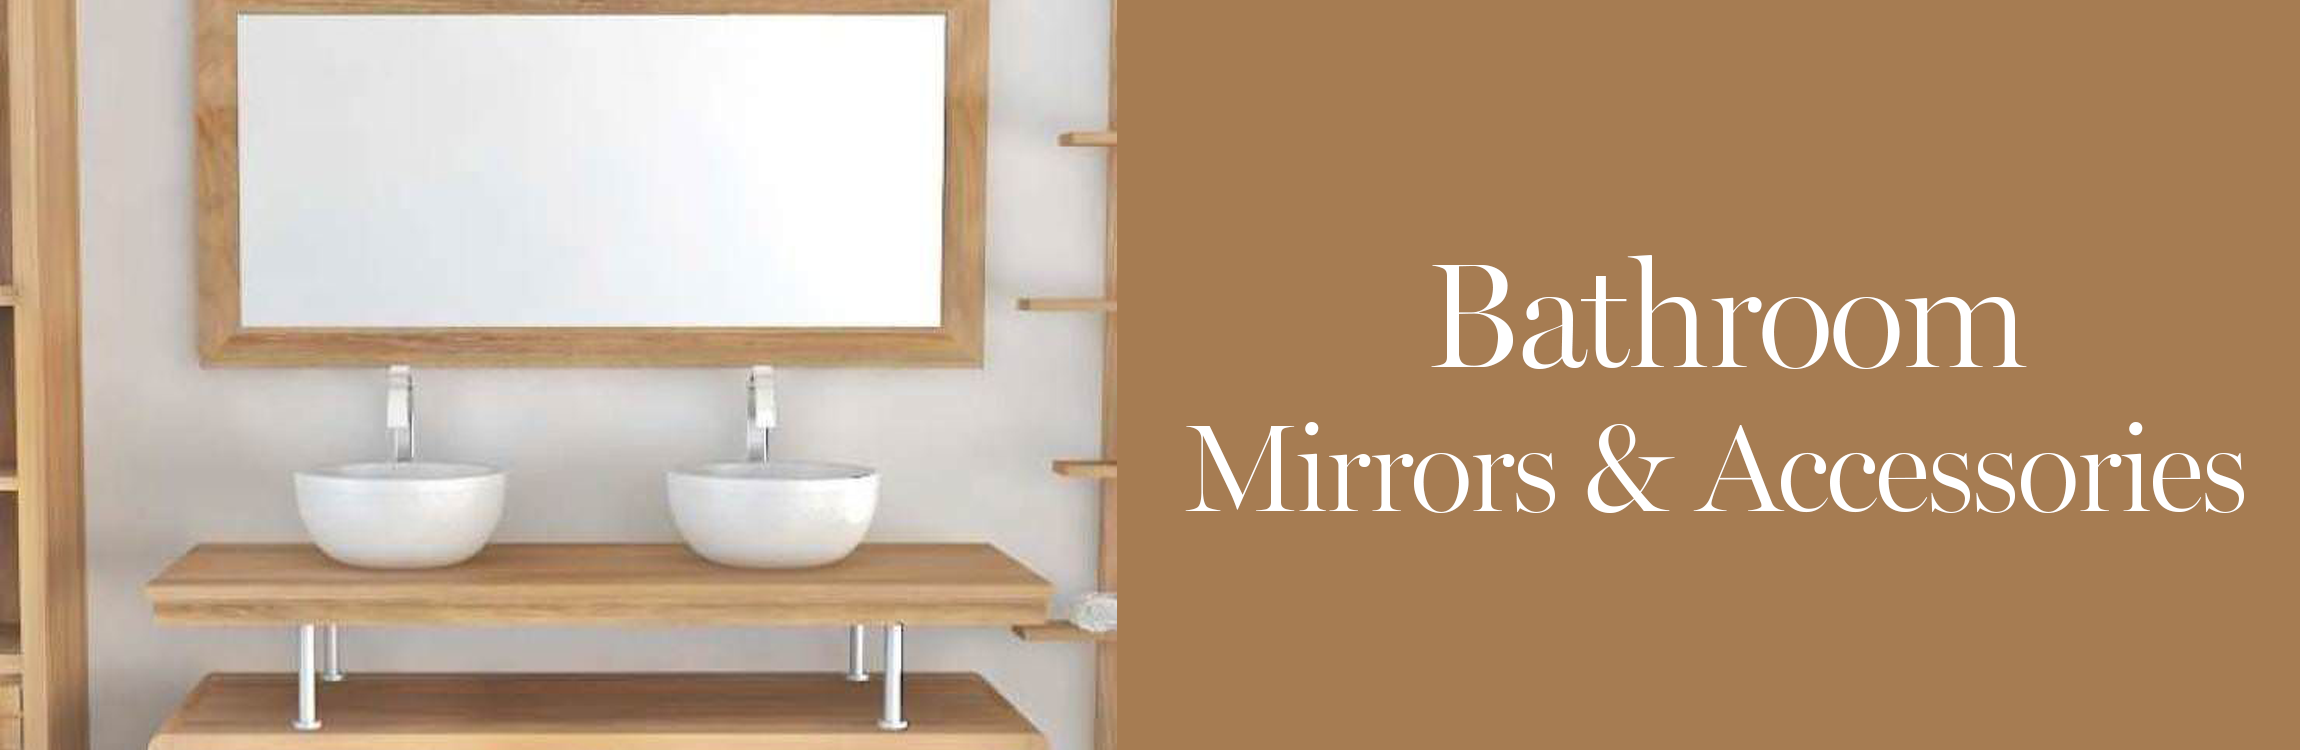 Bathroom Mirrors And Accessories